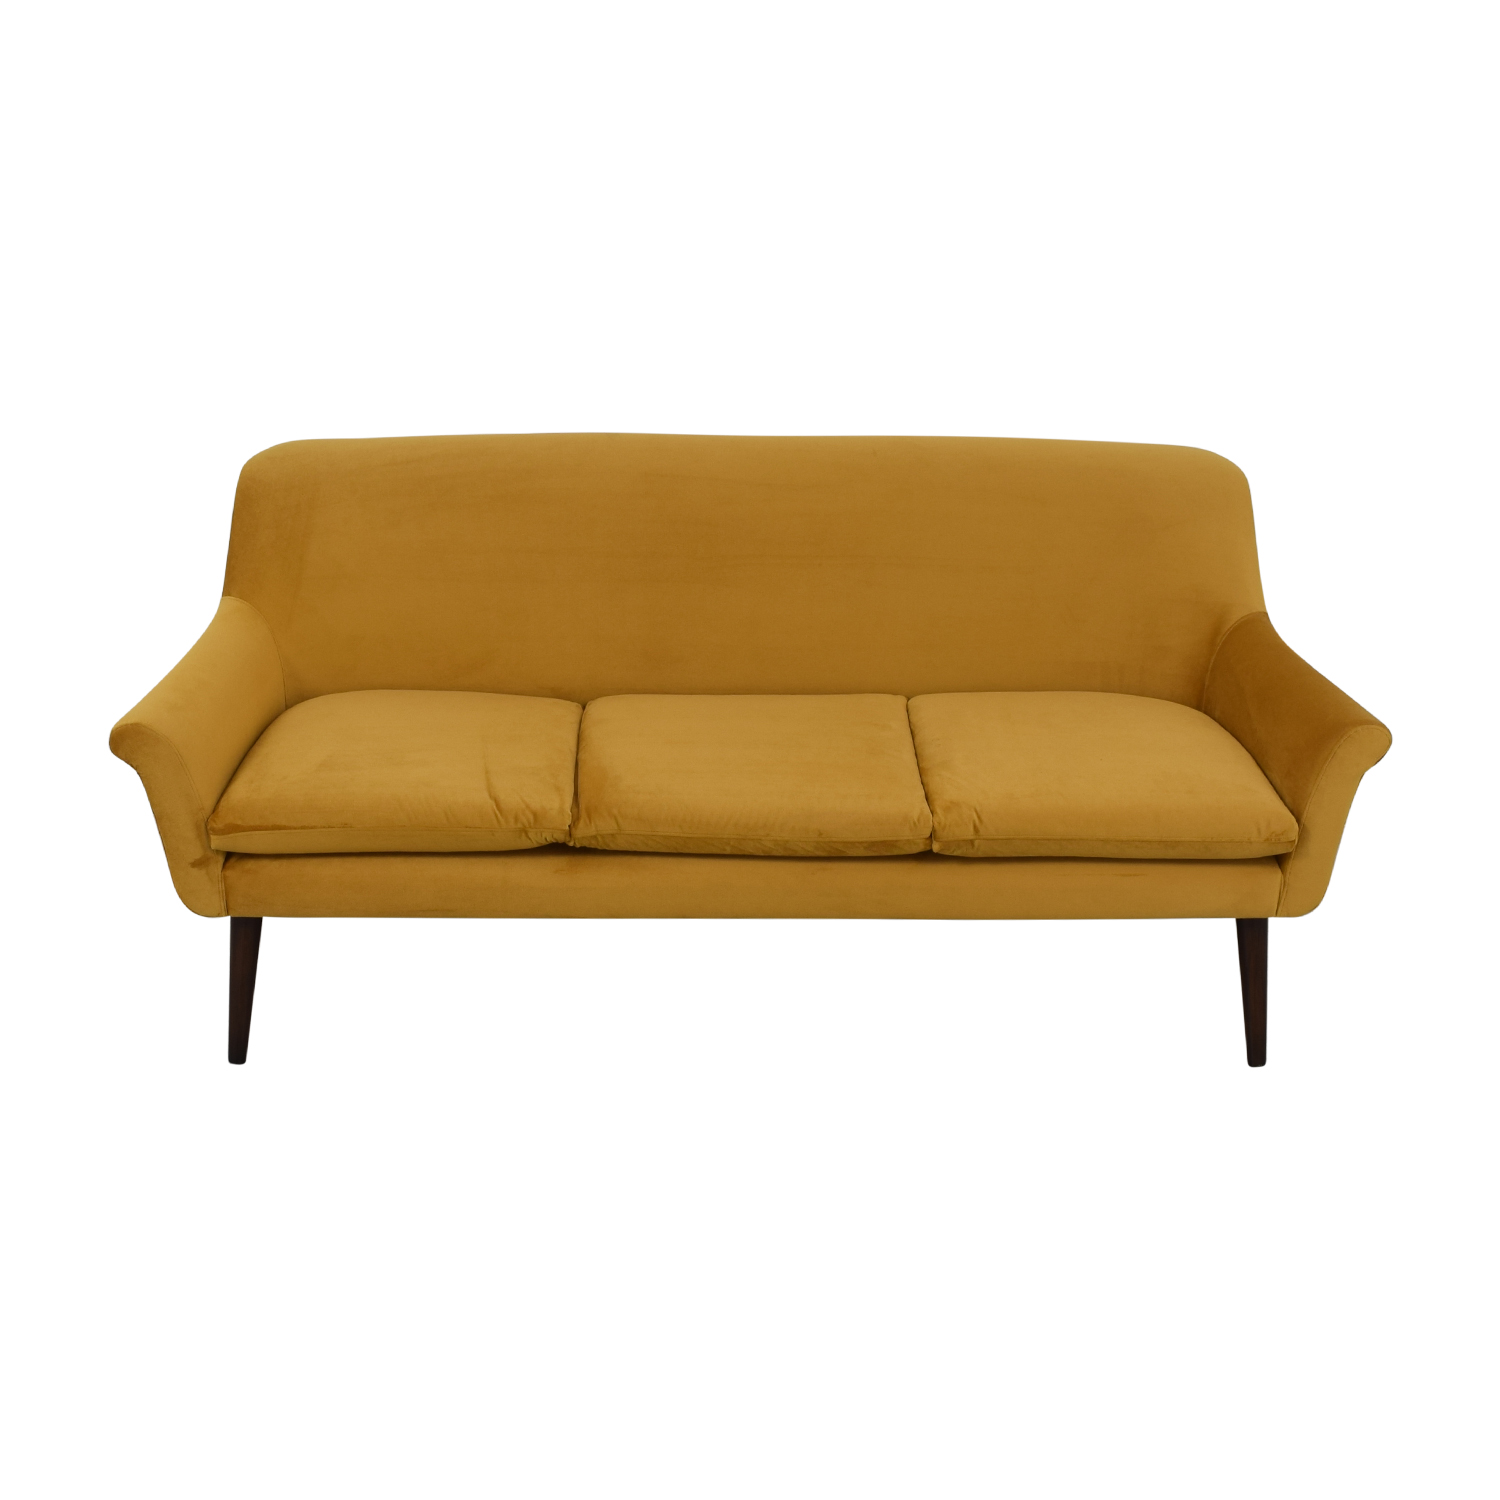 Urban Outfitters Urban Outfitters Yellow Velvet Sofa Sofas